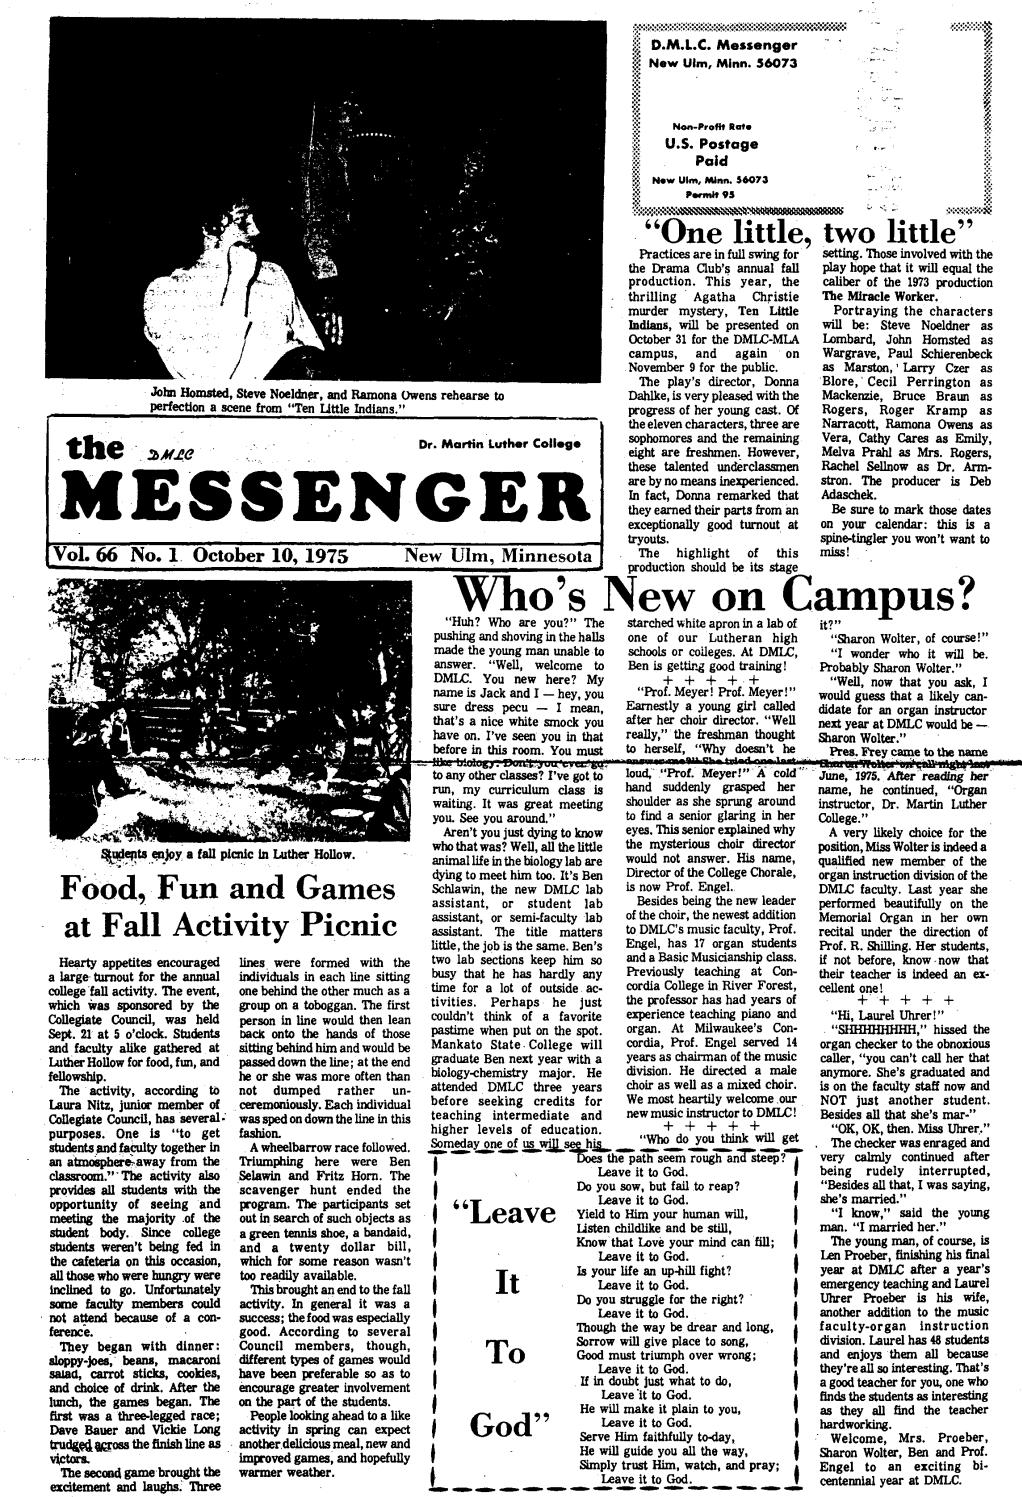 Rip Keith Rathbun Former Scene Publisher Scene And Heard 1975 1976 Dmlc Messenger Vol 66 By Martin Luther College Issuu